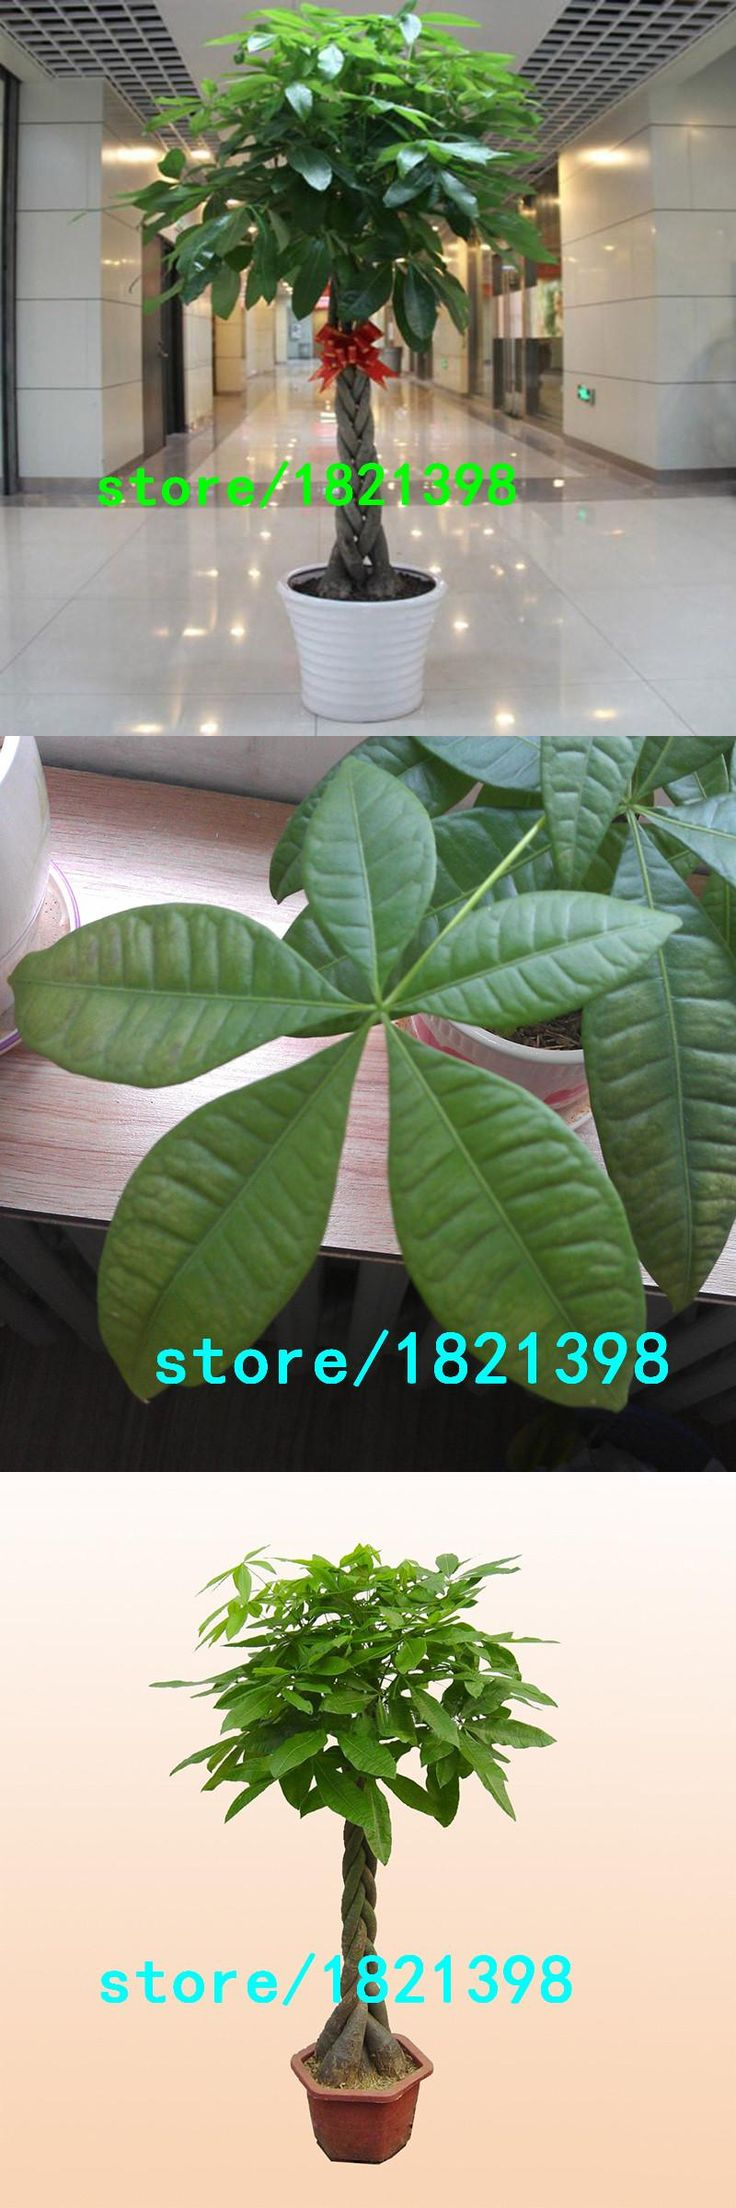 [Visit to Buy] Hot Sale Pachira Macrocarpa Seeds 100% True Bonsai Tree Seeds Whip Pachira for DIY Home Garden Household Items 10 PCS/pack #Advertisement